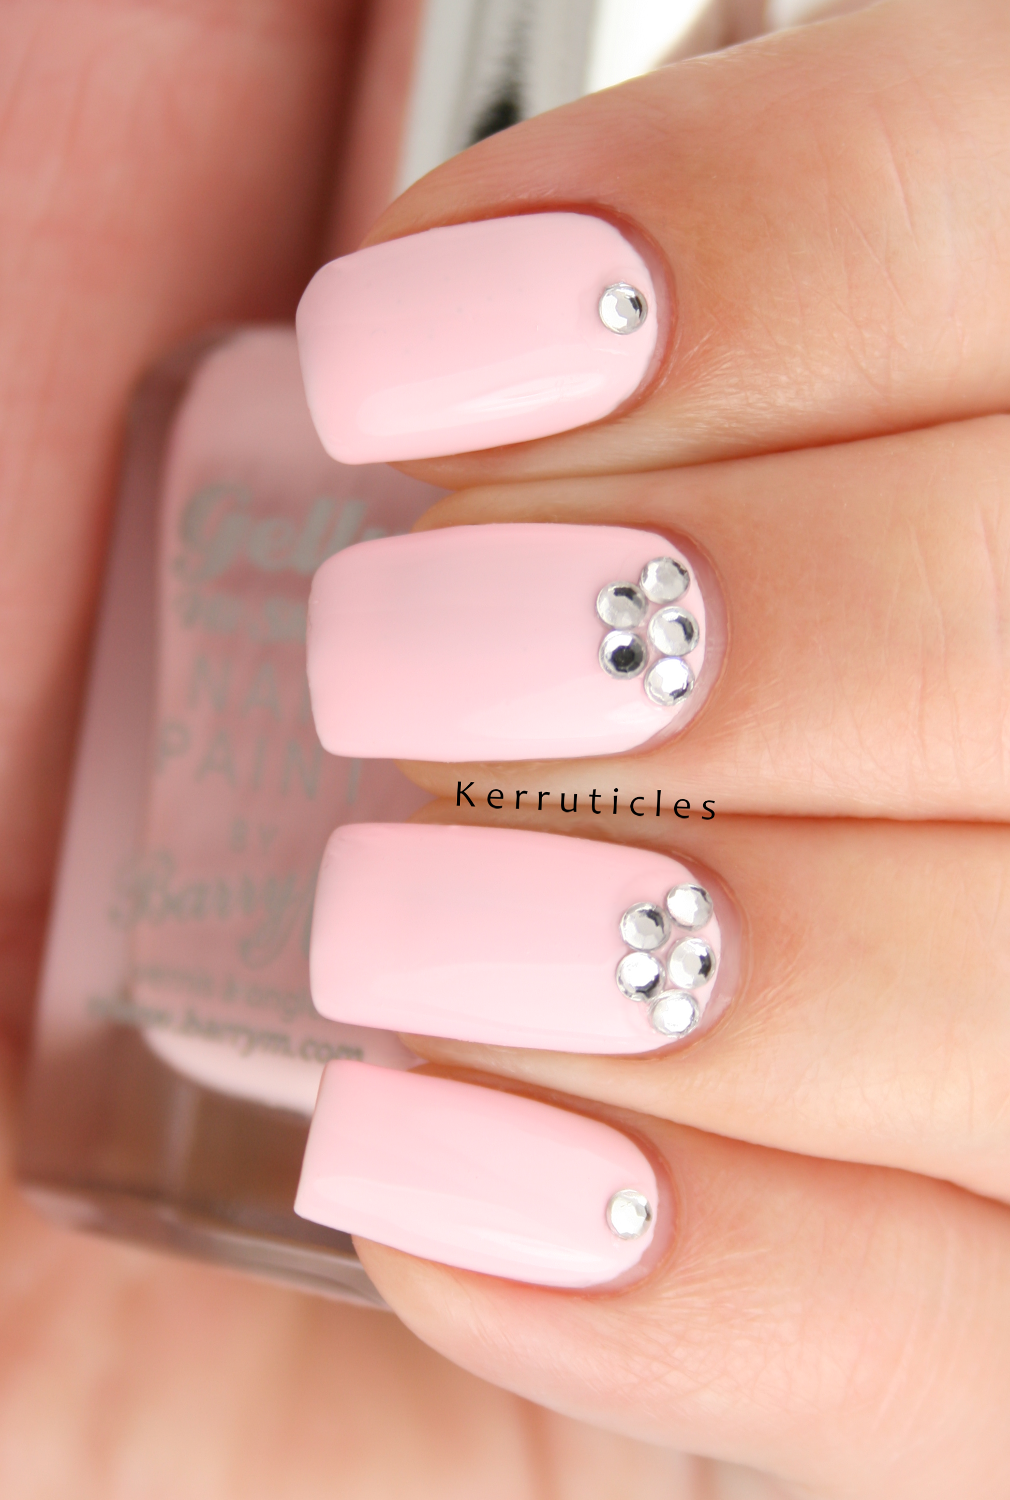 Barry M Rose Hip with rhinestones: August Polish Party | Kerruticles